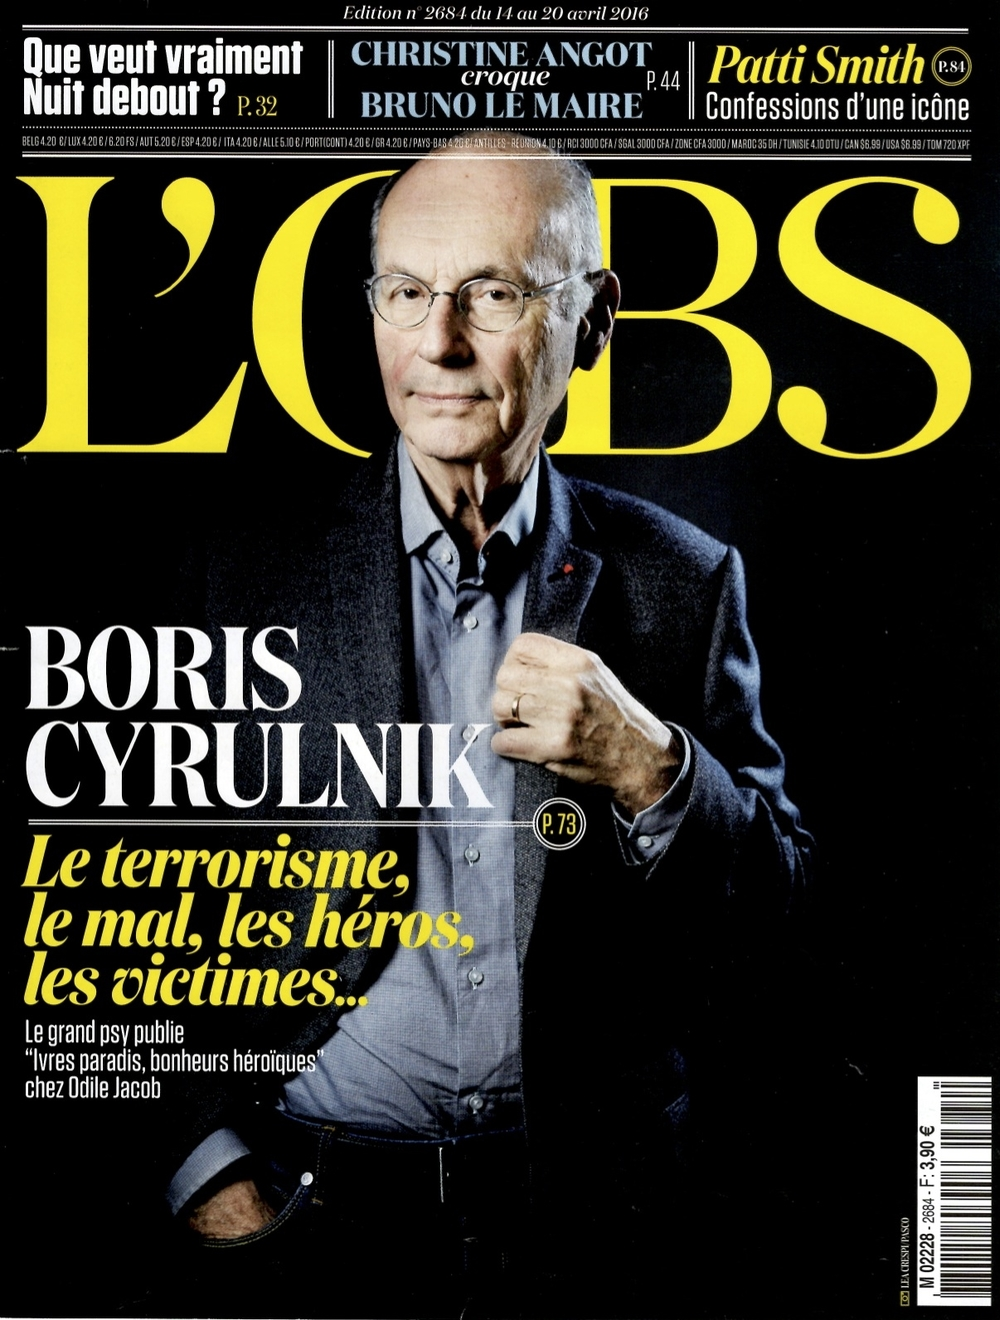 L'obs cover.jpg